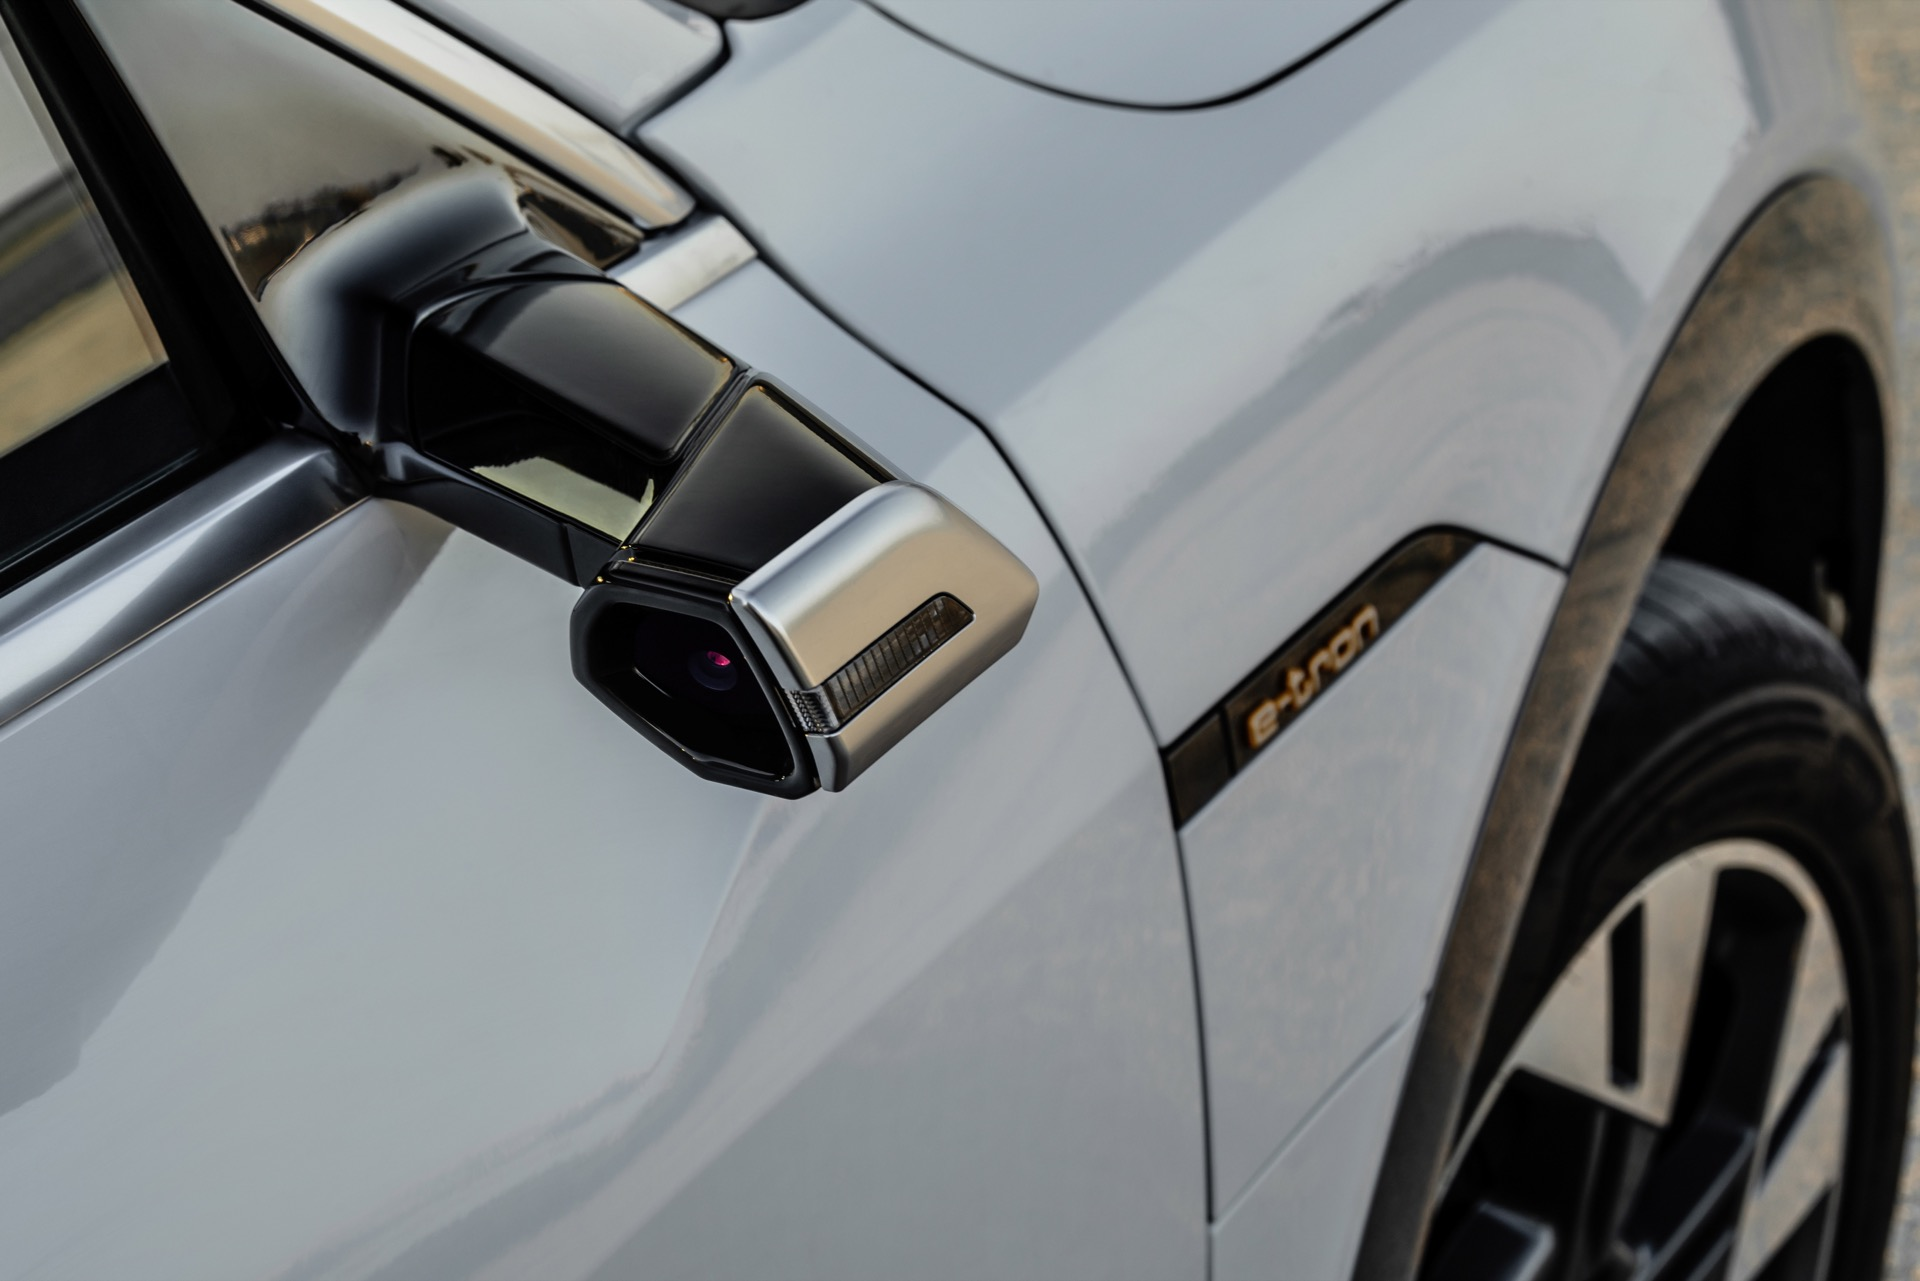 2019 Audi e-tron has cameras instead of mirrors*, but do they really work?